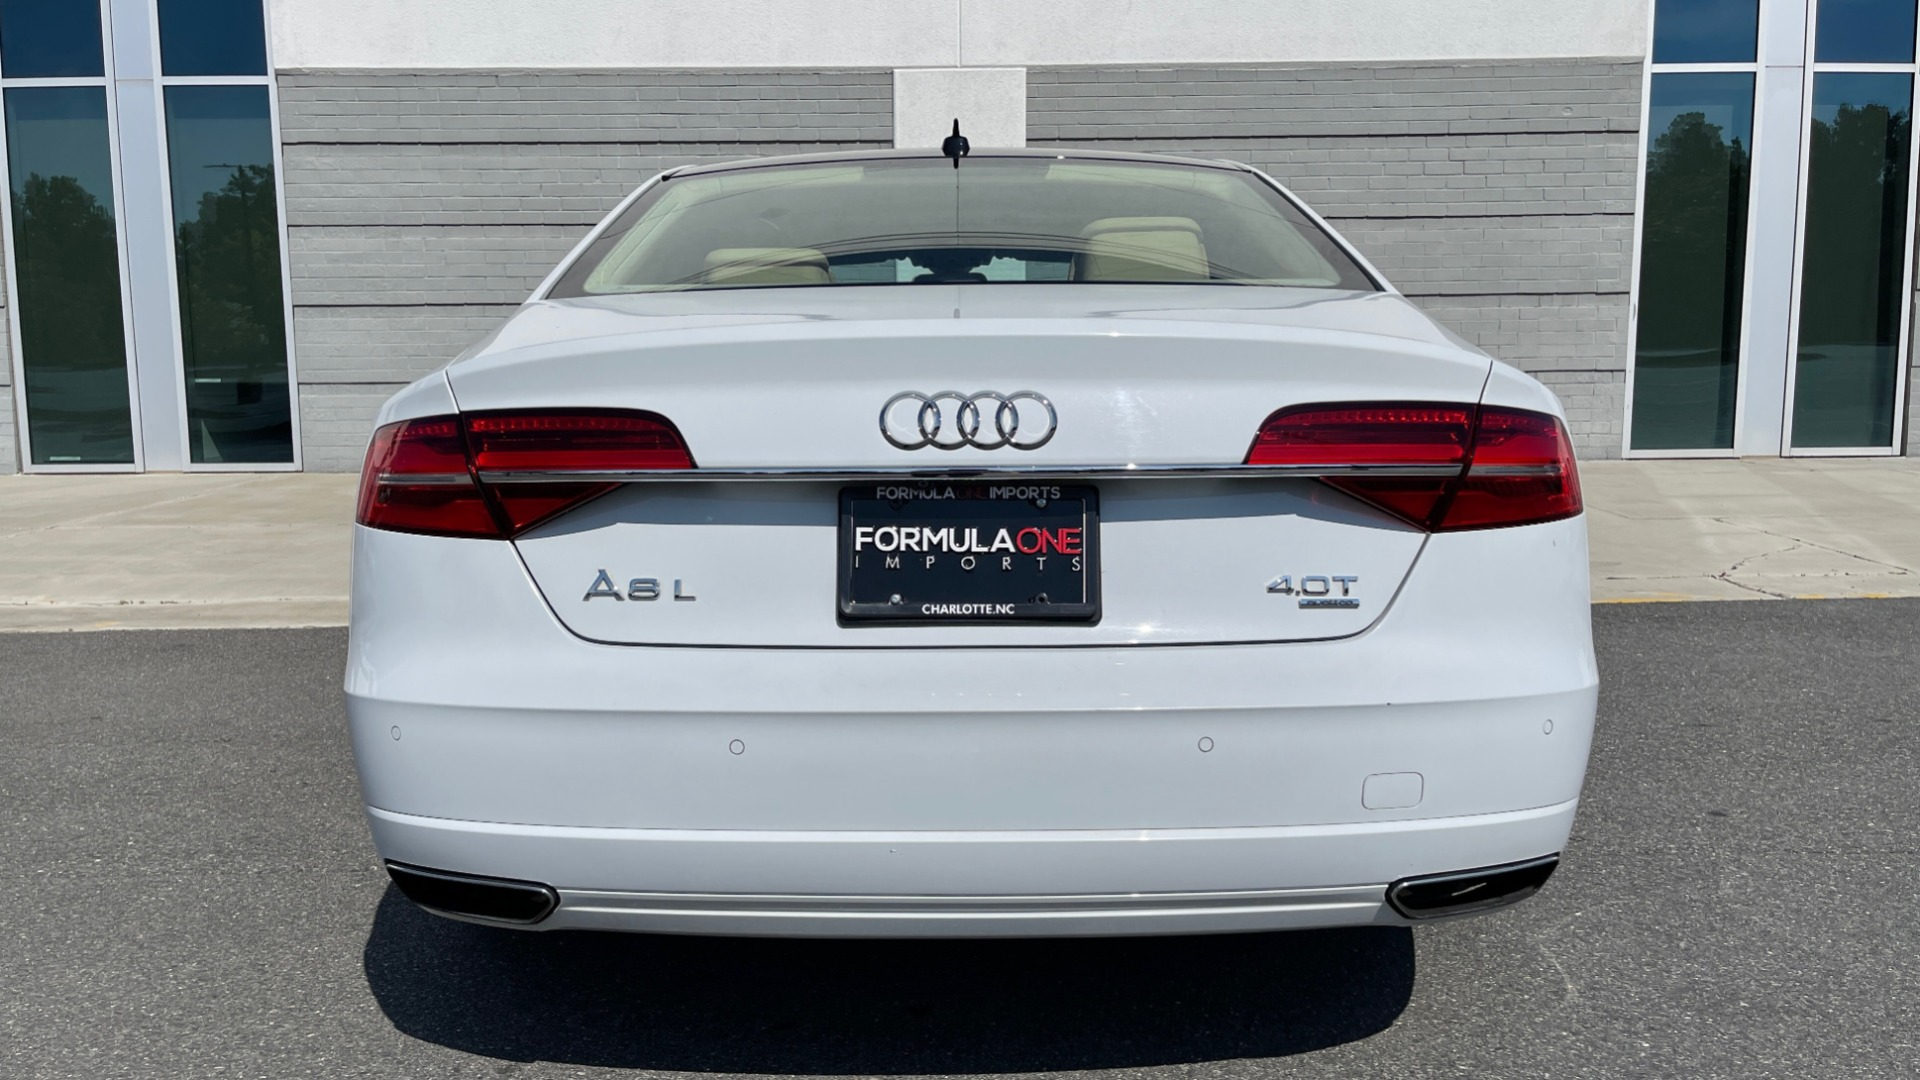 Used 2018 Audi A8 L SPORT 4.0T / EXECUTIVE PKG / NAV / BOSE / SUNROOF / REARVIEW for sale Sold at Formula Imports in Charlotte NC 28227 26